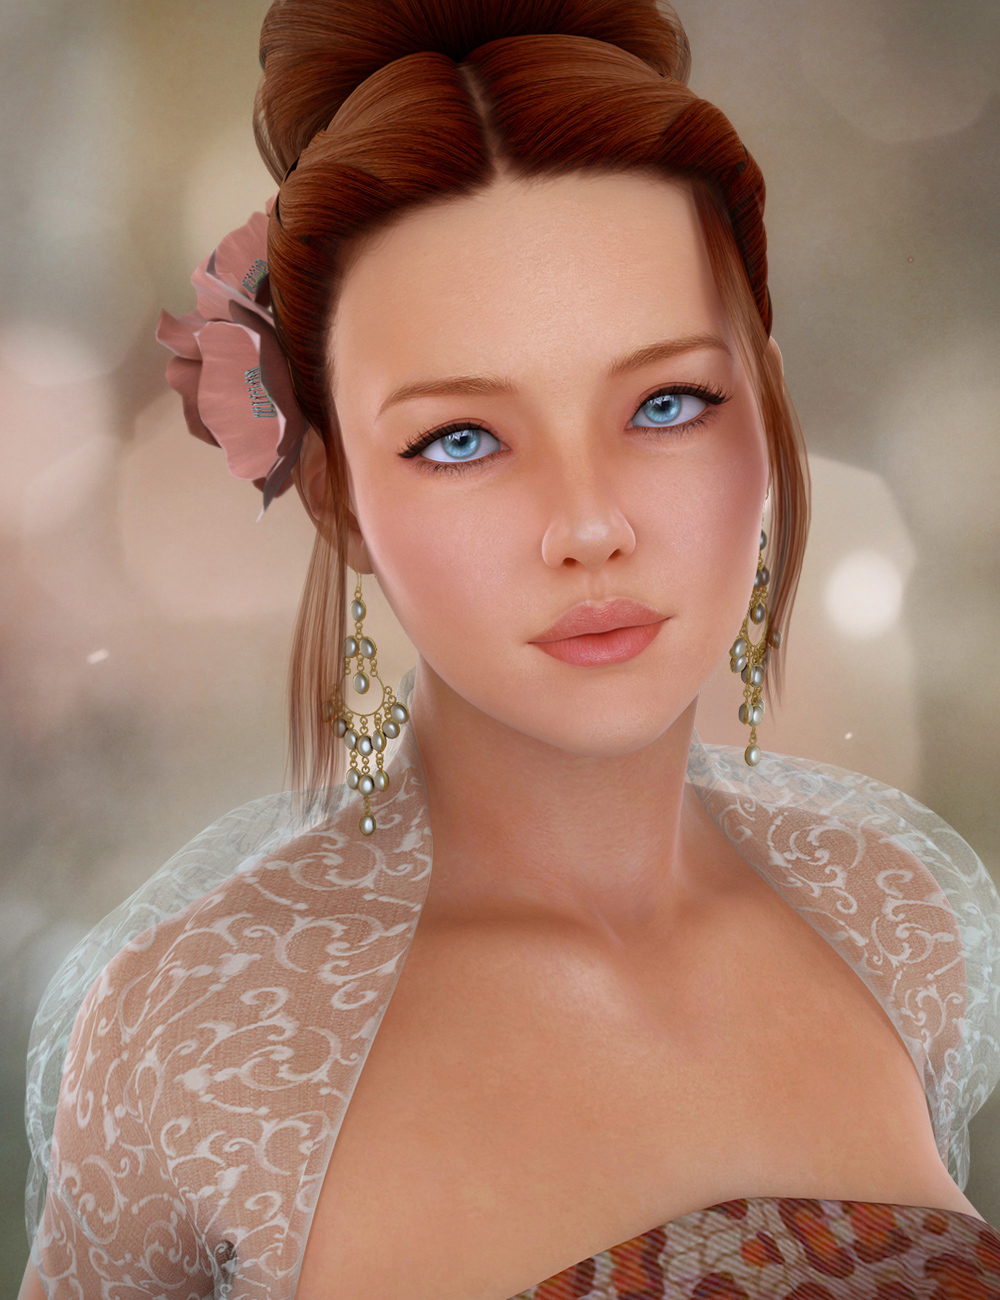 Marguerite by: addy, 3D Models by Daz 3D